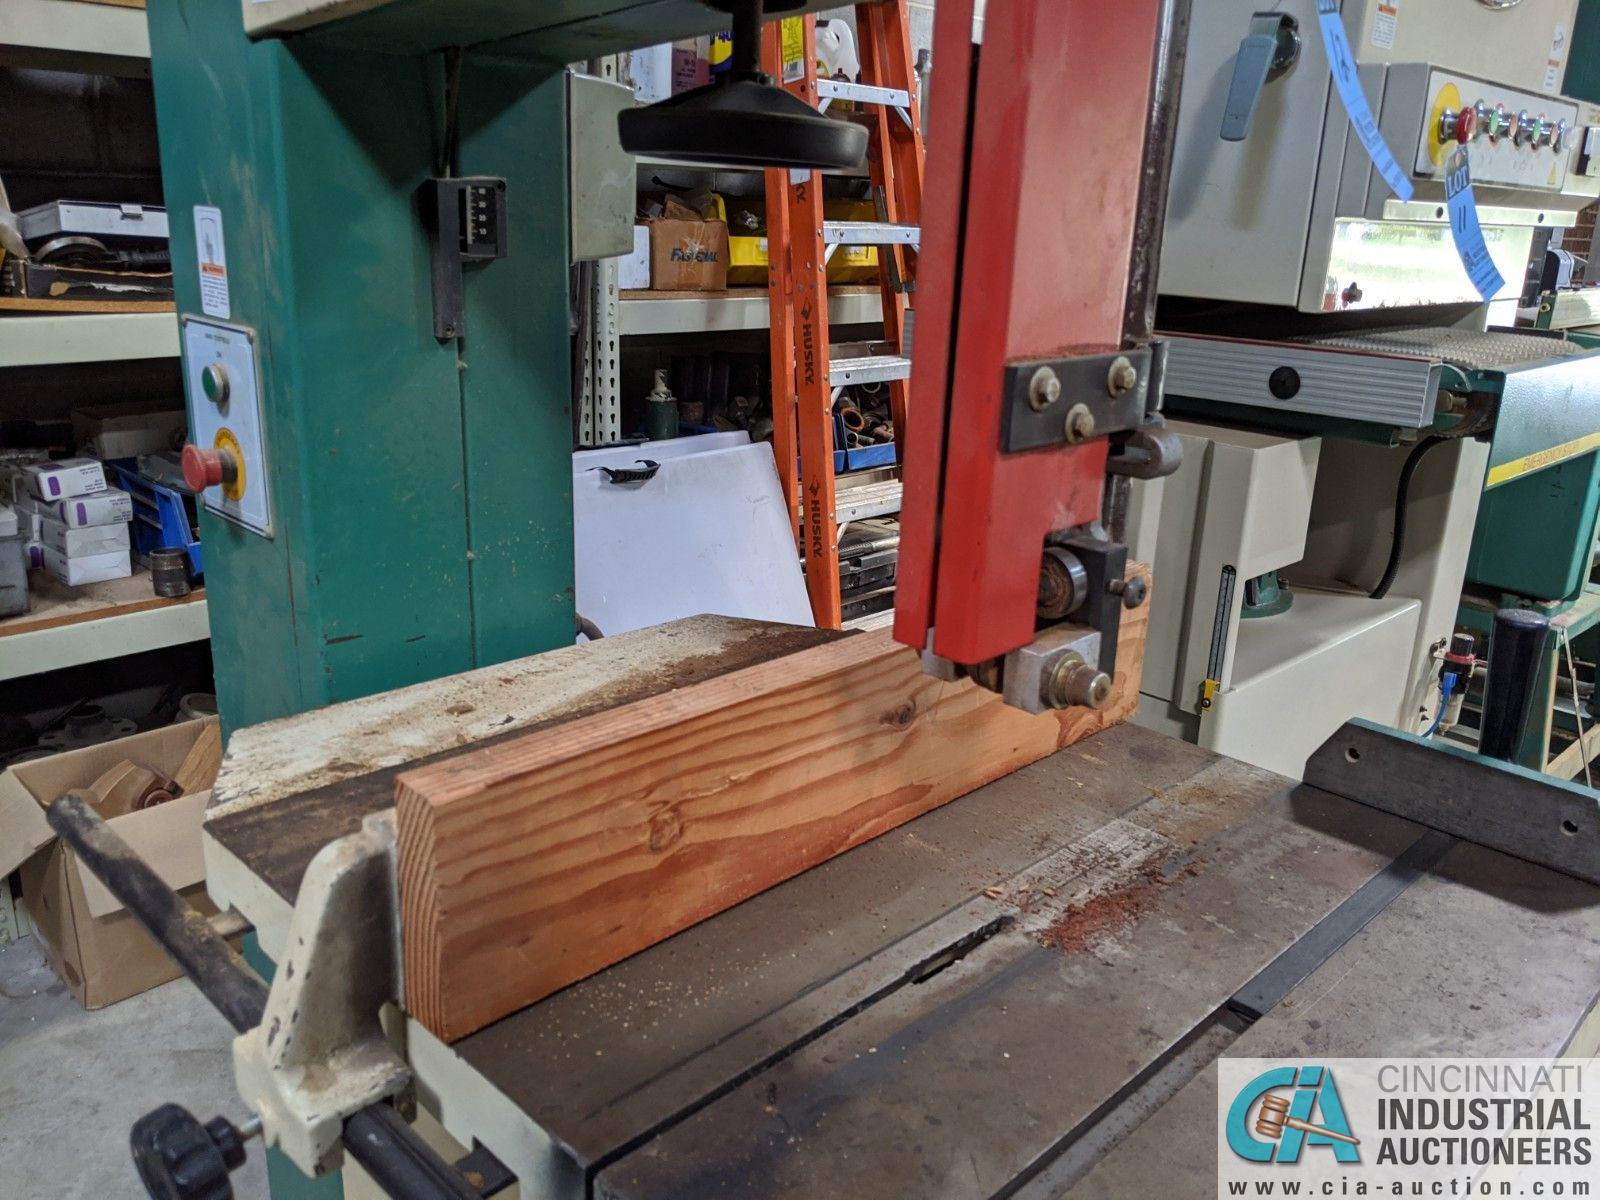 """12"""" GRIZZLY MODEL G3619 VERTICAL BAND SAW; S/N 08146, 3-1/2"""" X 23-3/4"""" TABLE, 5-HP, SINGLE PHASE ( - Image 5 of 6"""